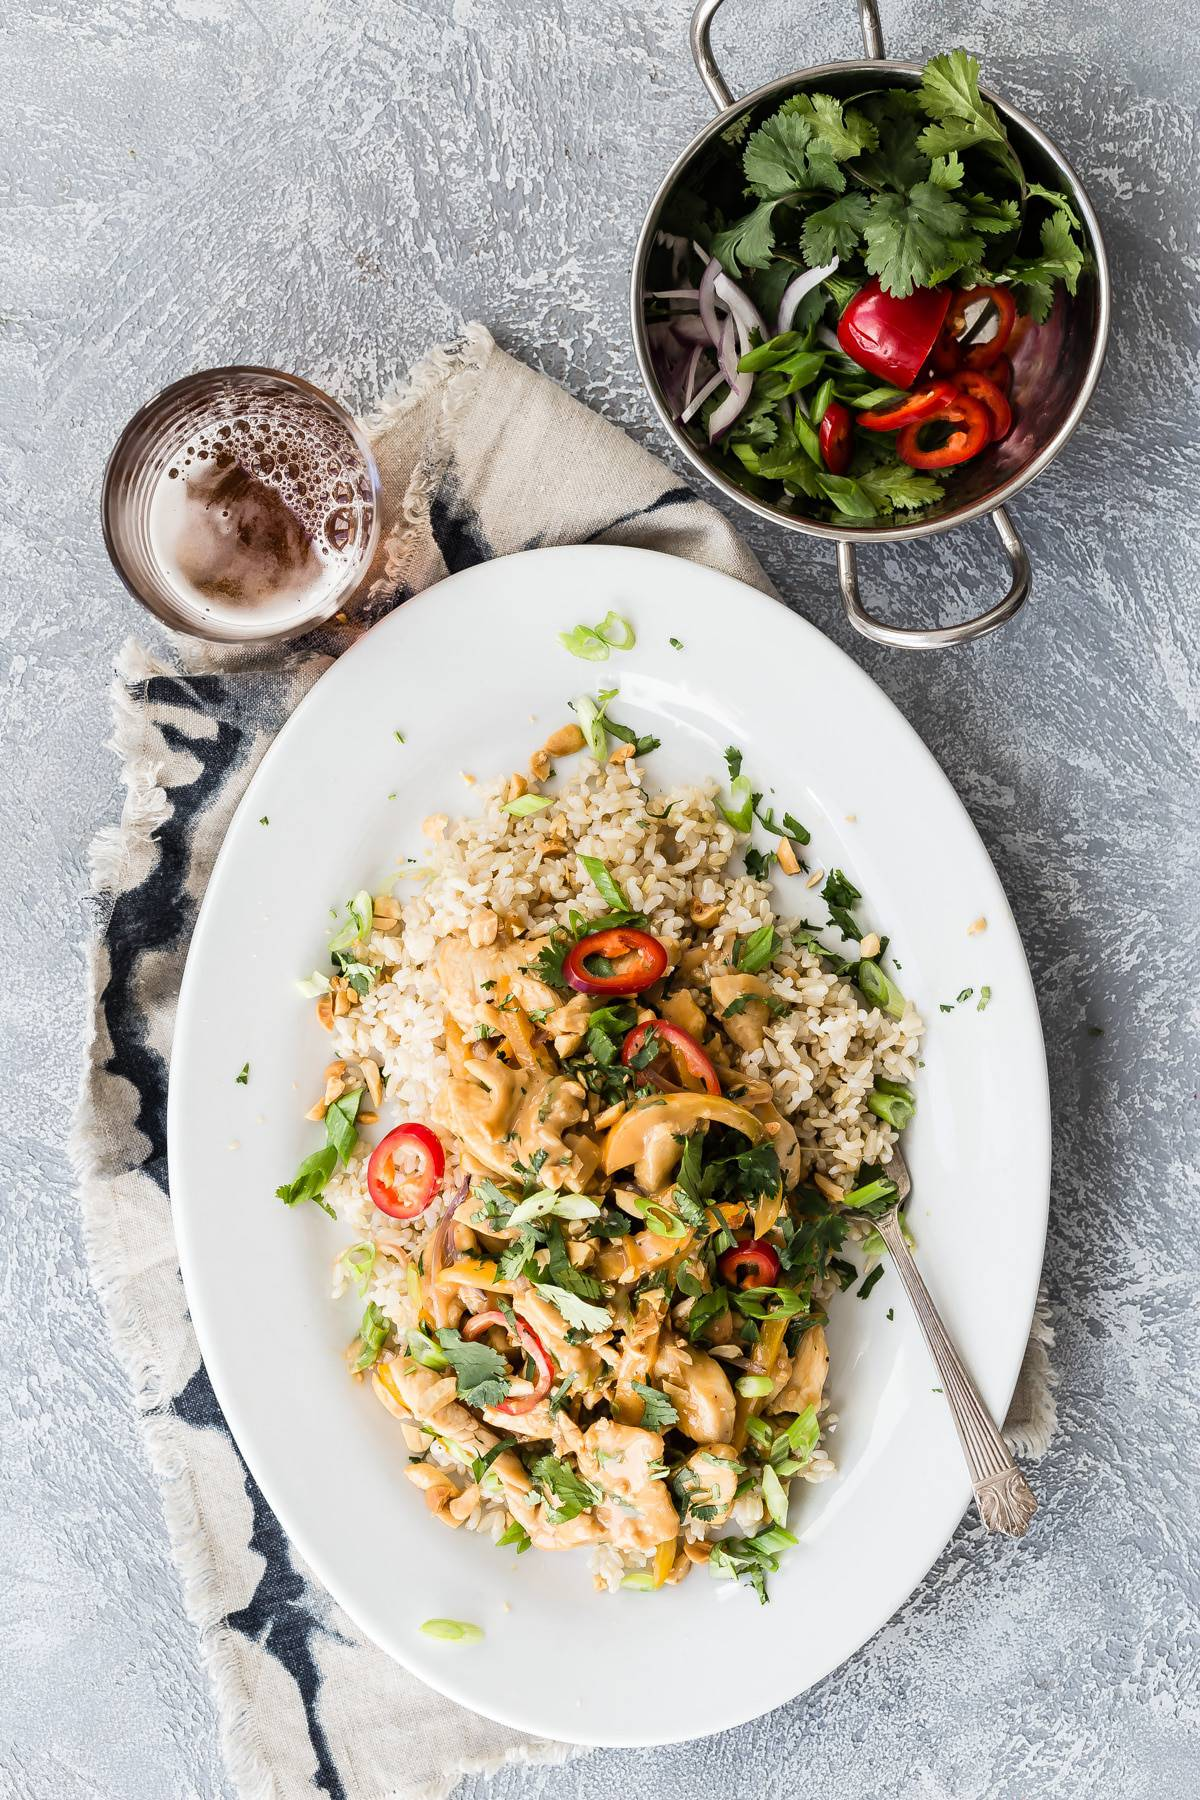 Chicken Stir Fry in a Spicy Thai Peanut Sauce